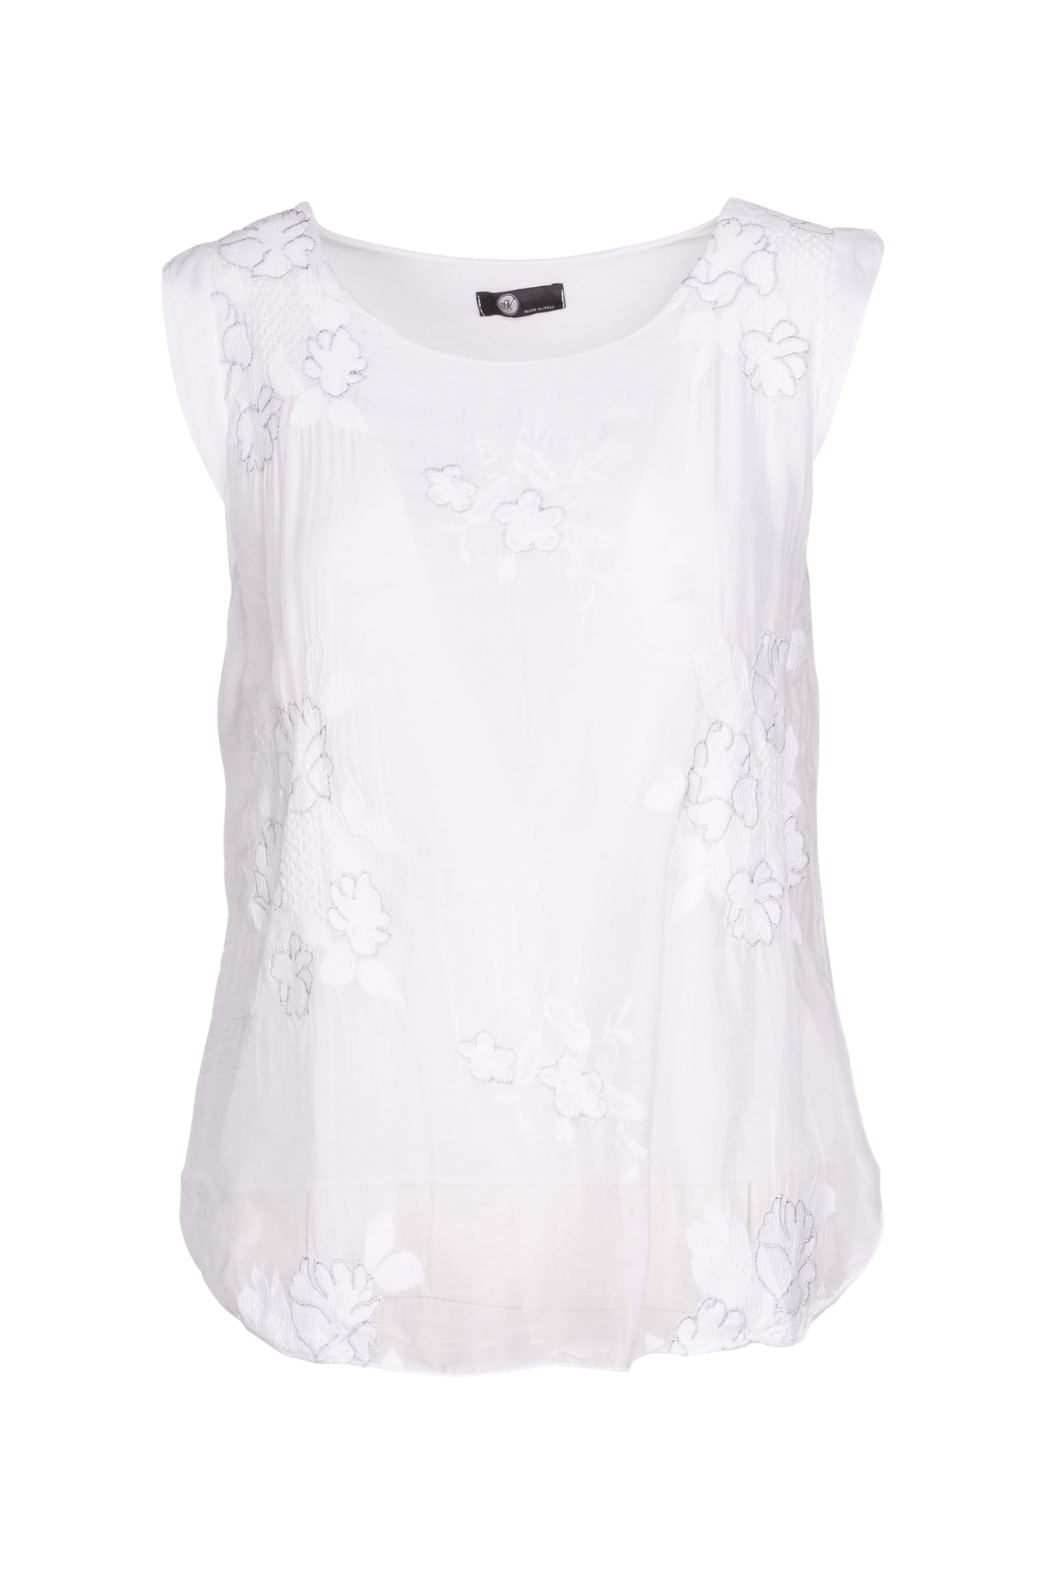 M made in Italy Floral Embroidered Blouse - Main Image